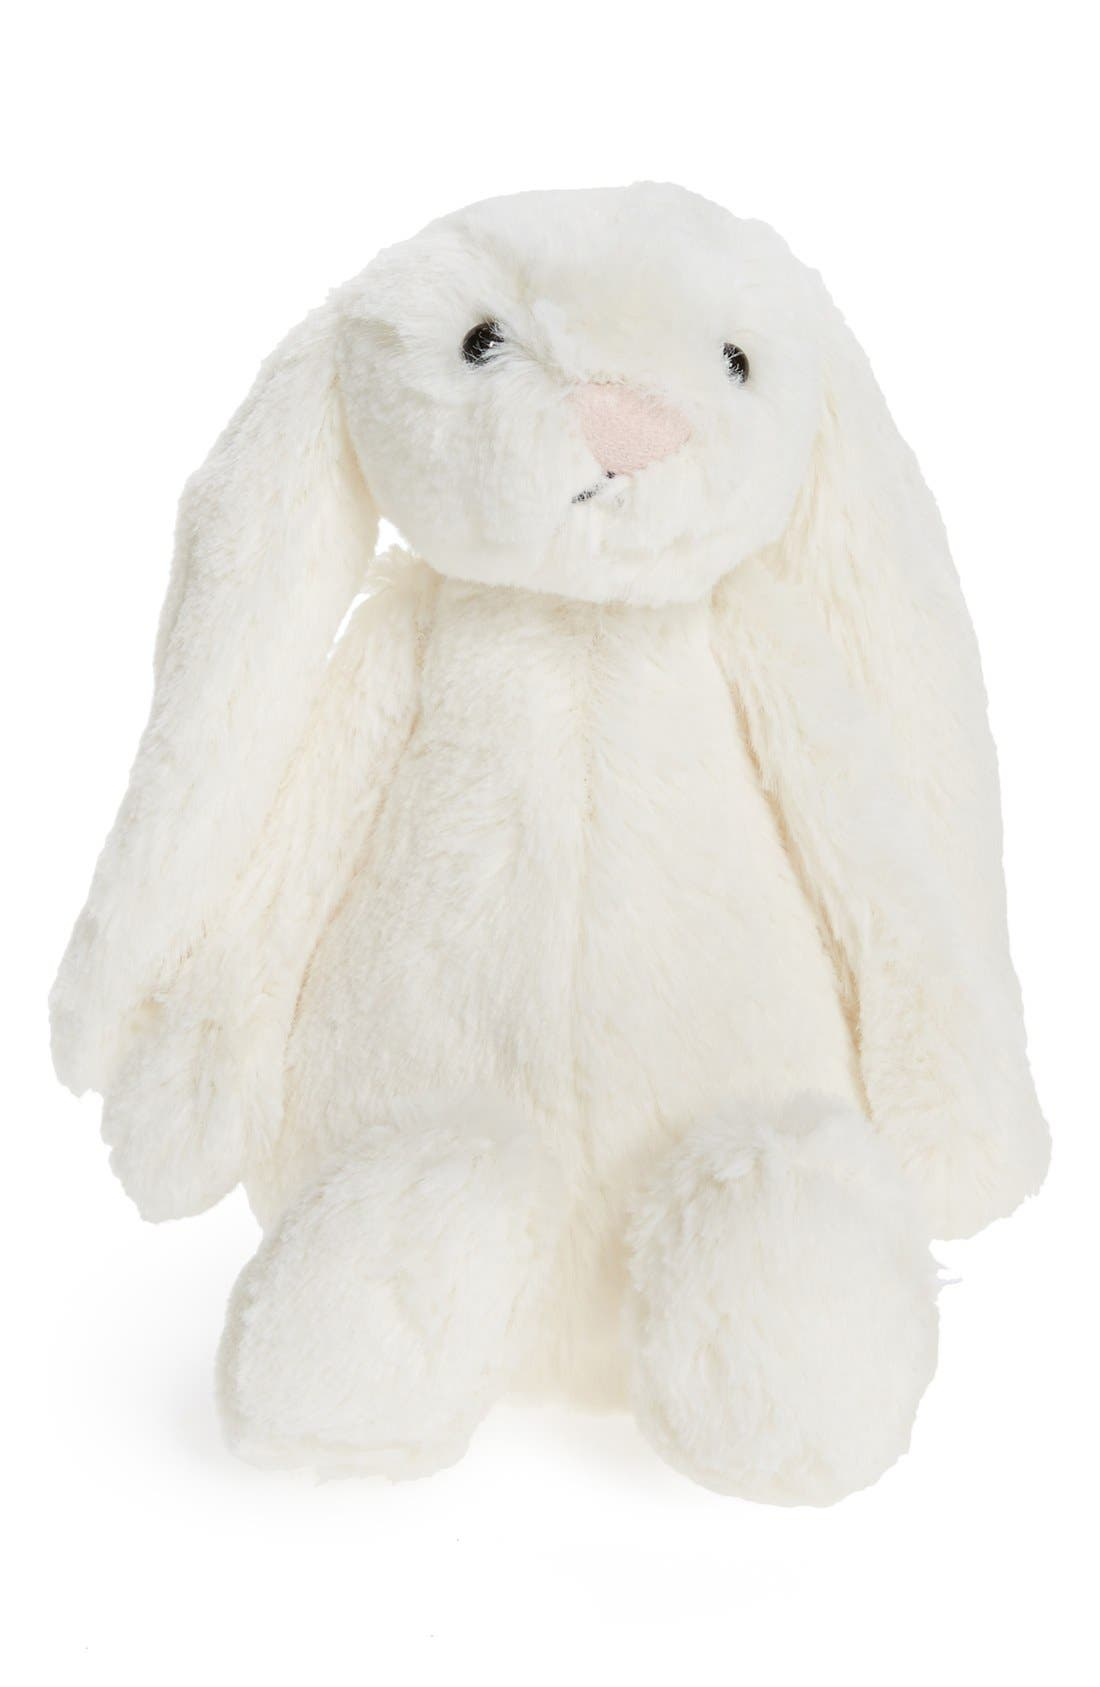 'Small Bashful Bunny' Stuffed Animal,                             Main thumbnail 1, color,                             Cream